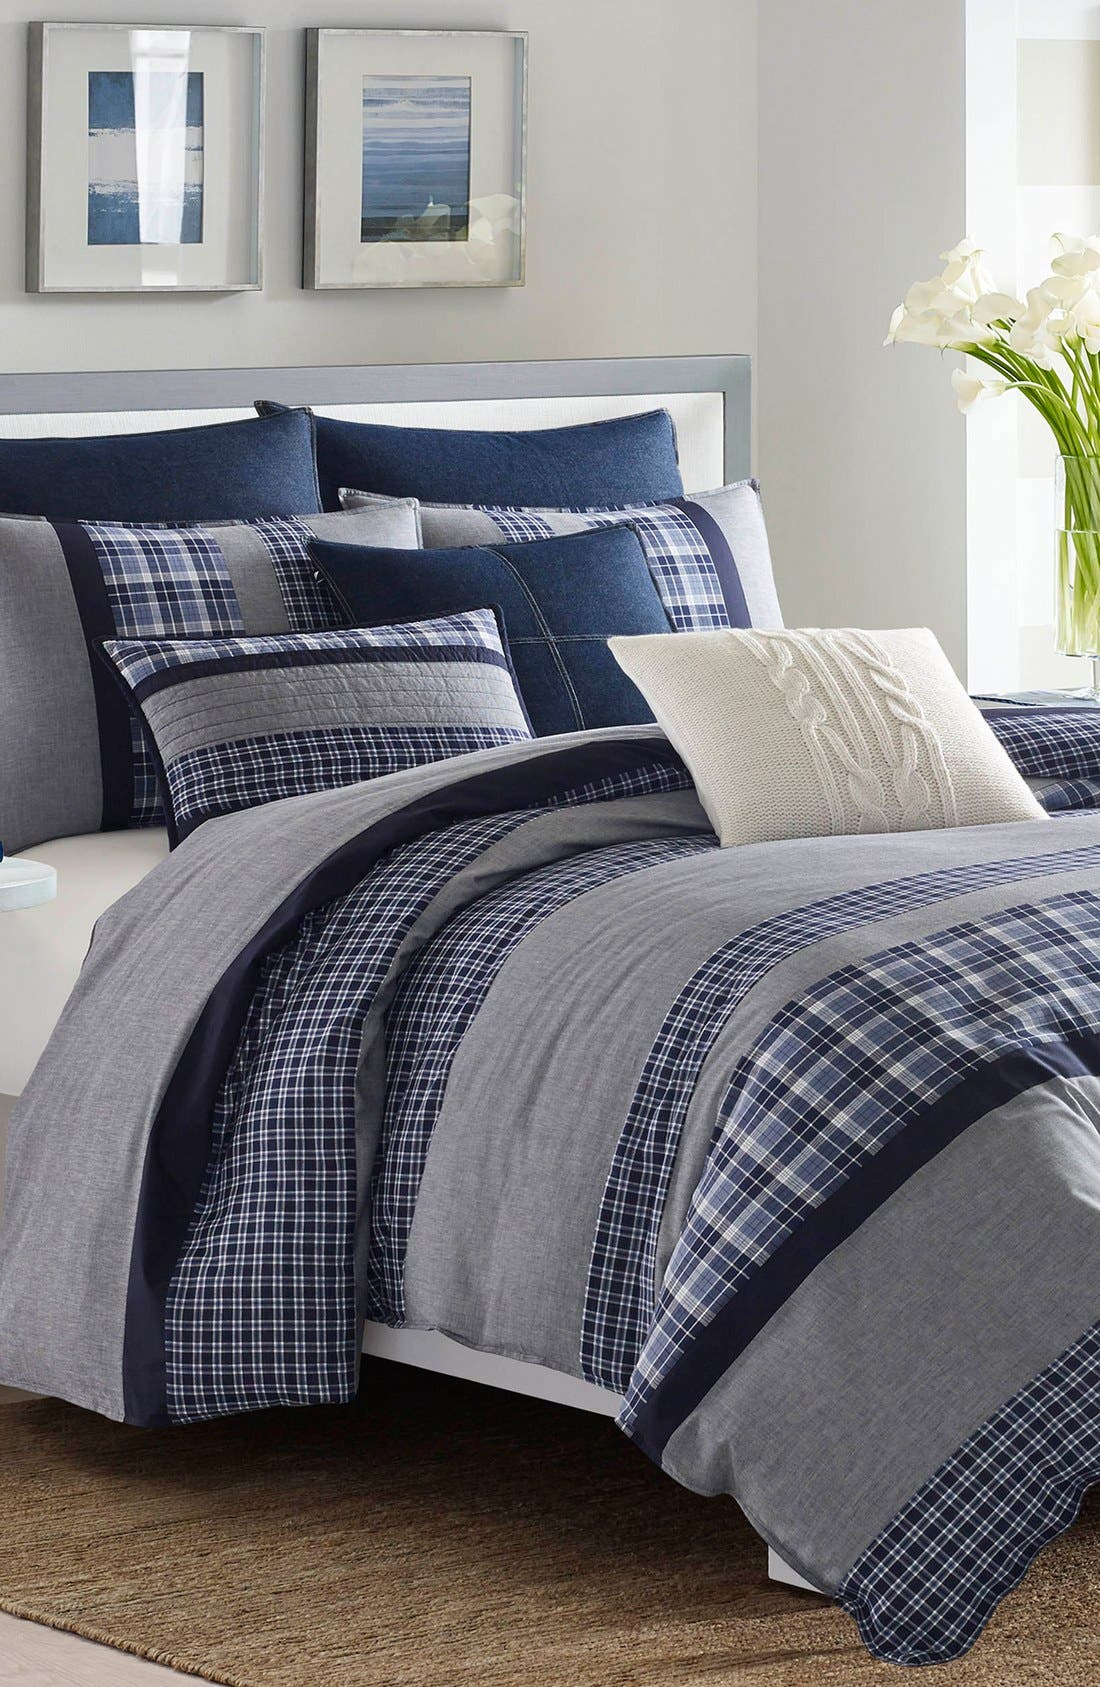 Nautica 'Adleson' Bedding Collection